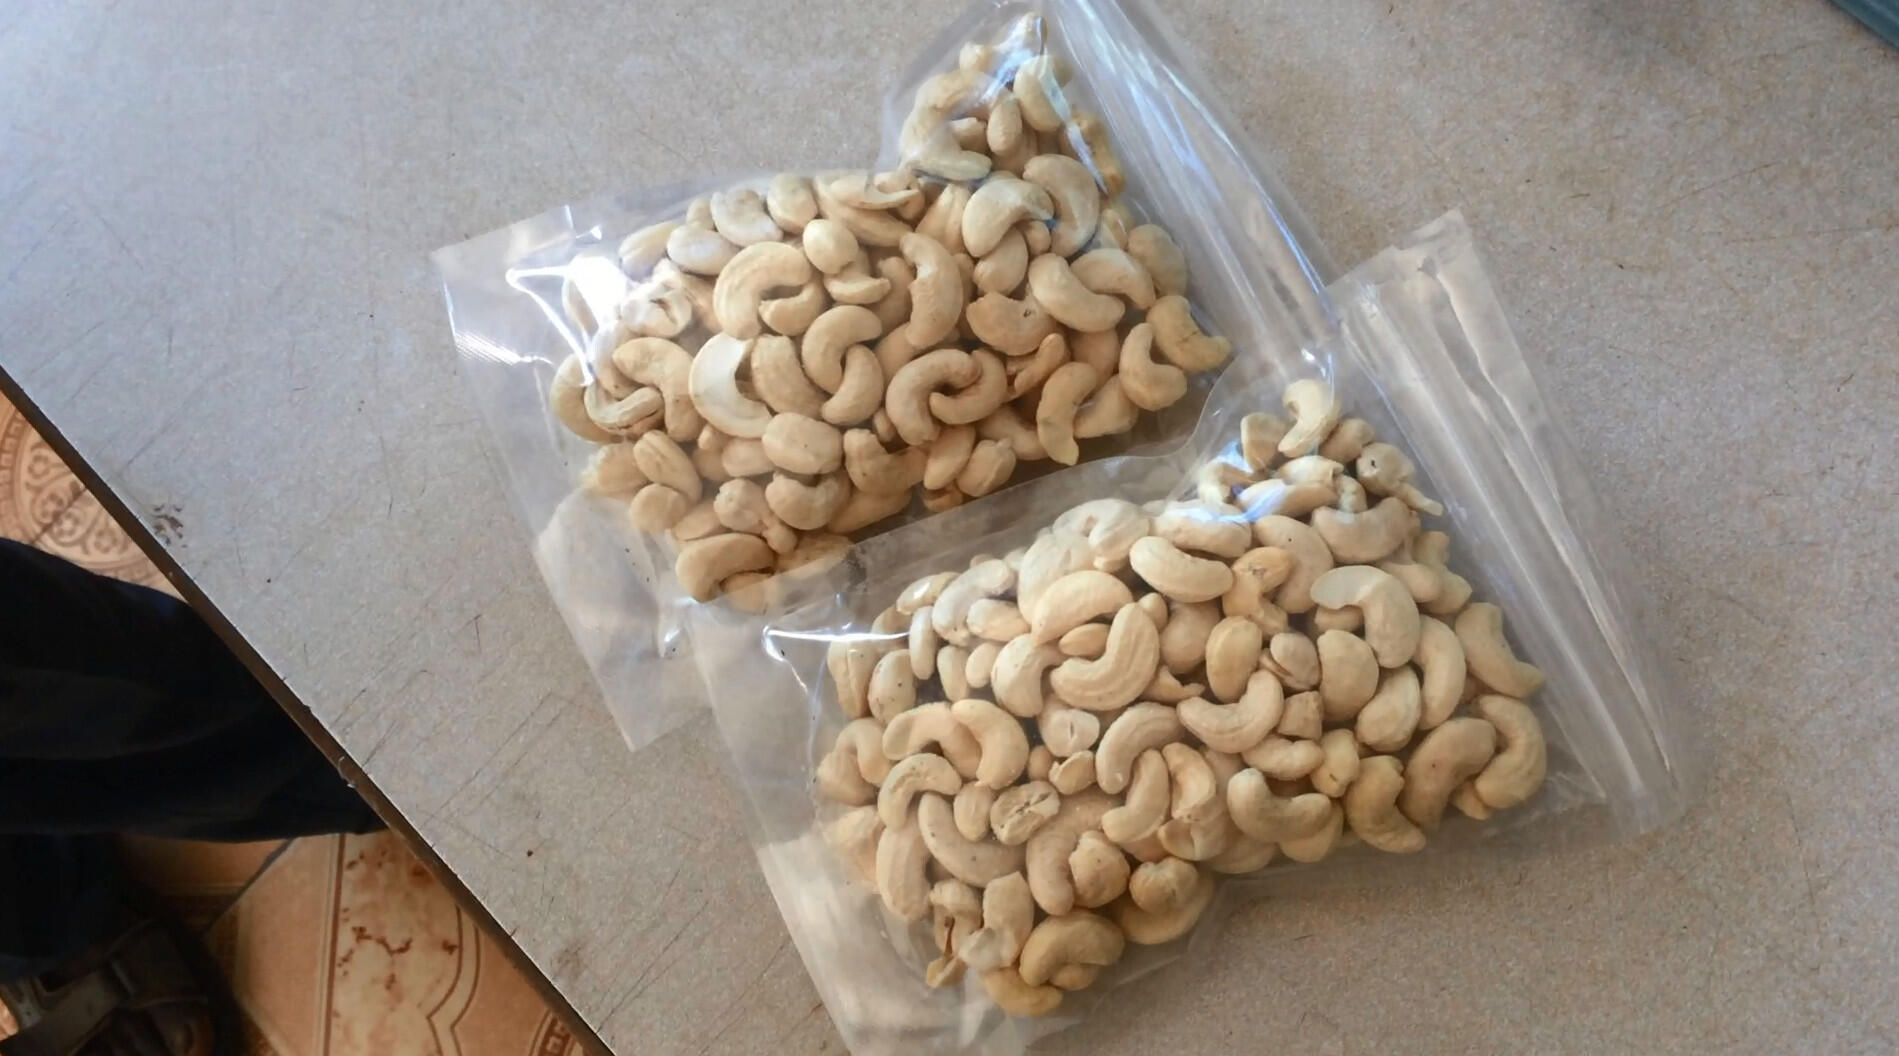 The final product - vacuum packed cashew nuts.